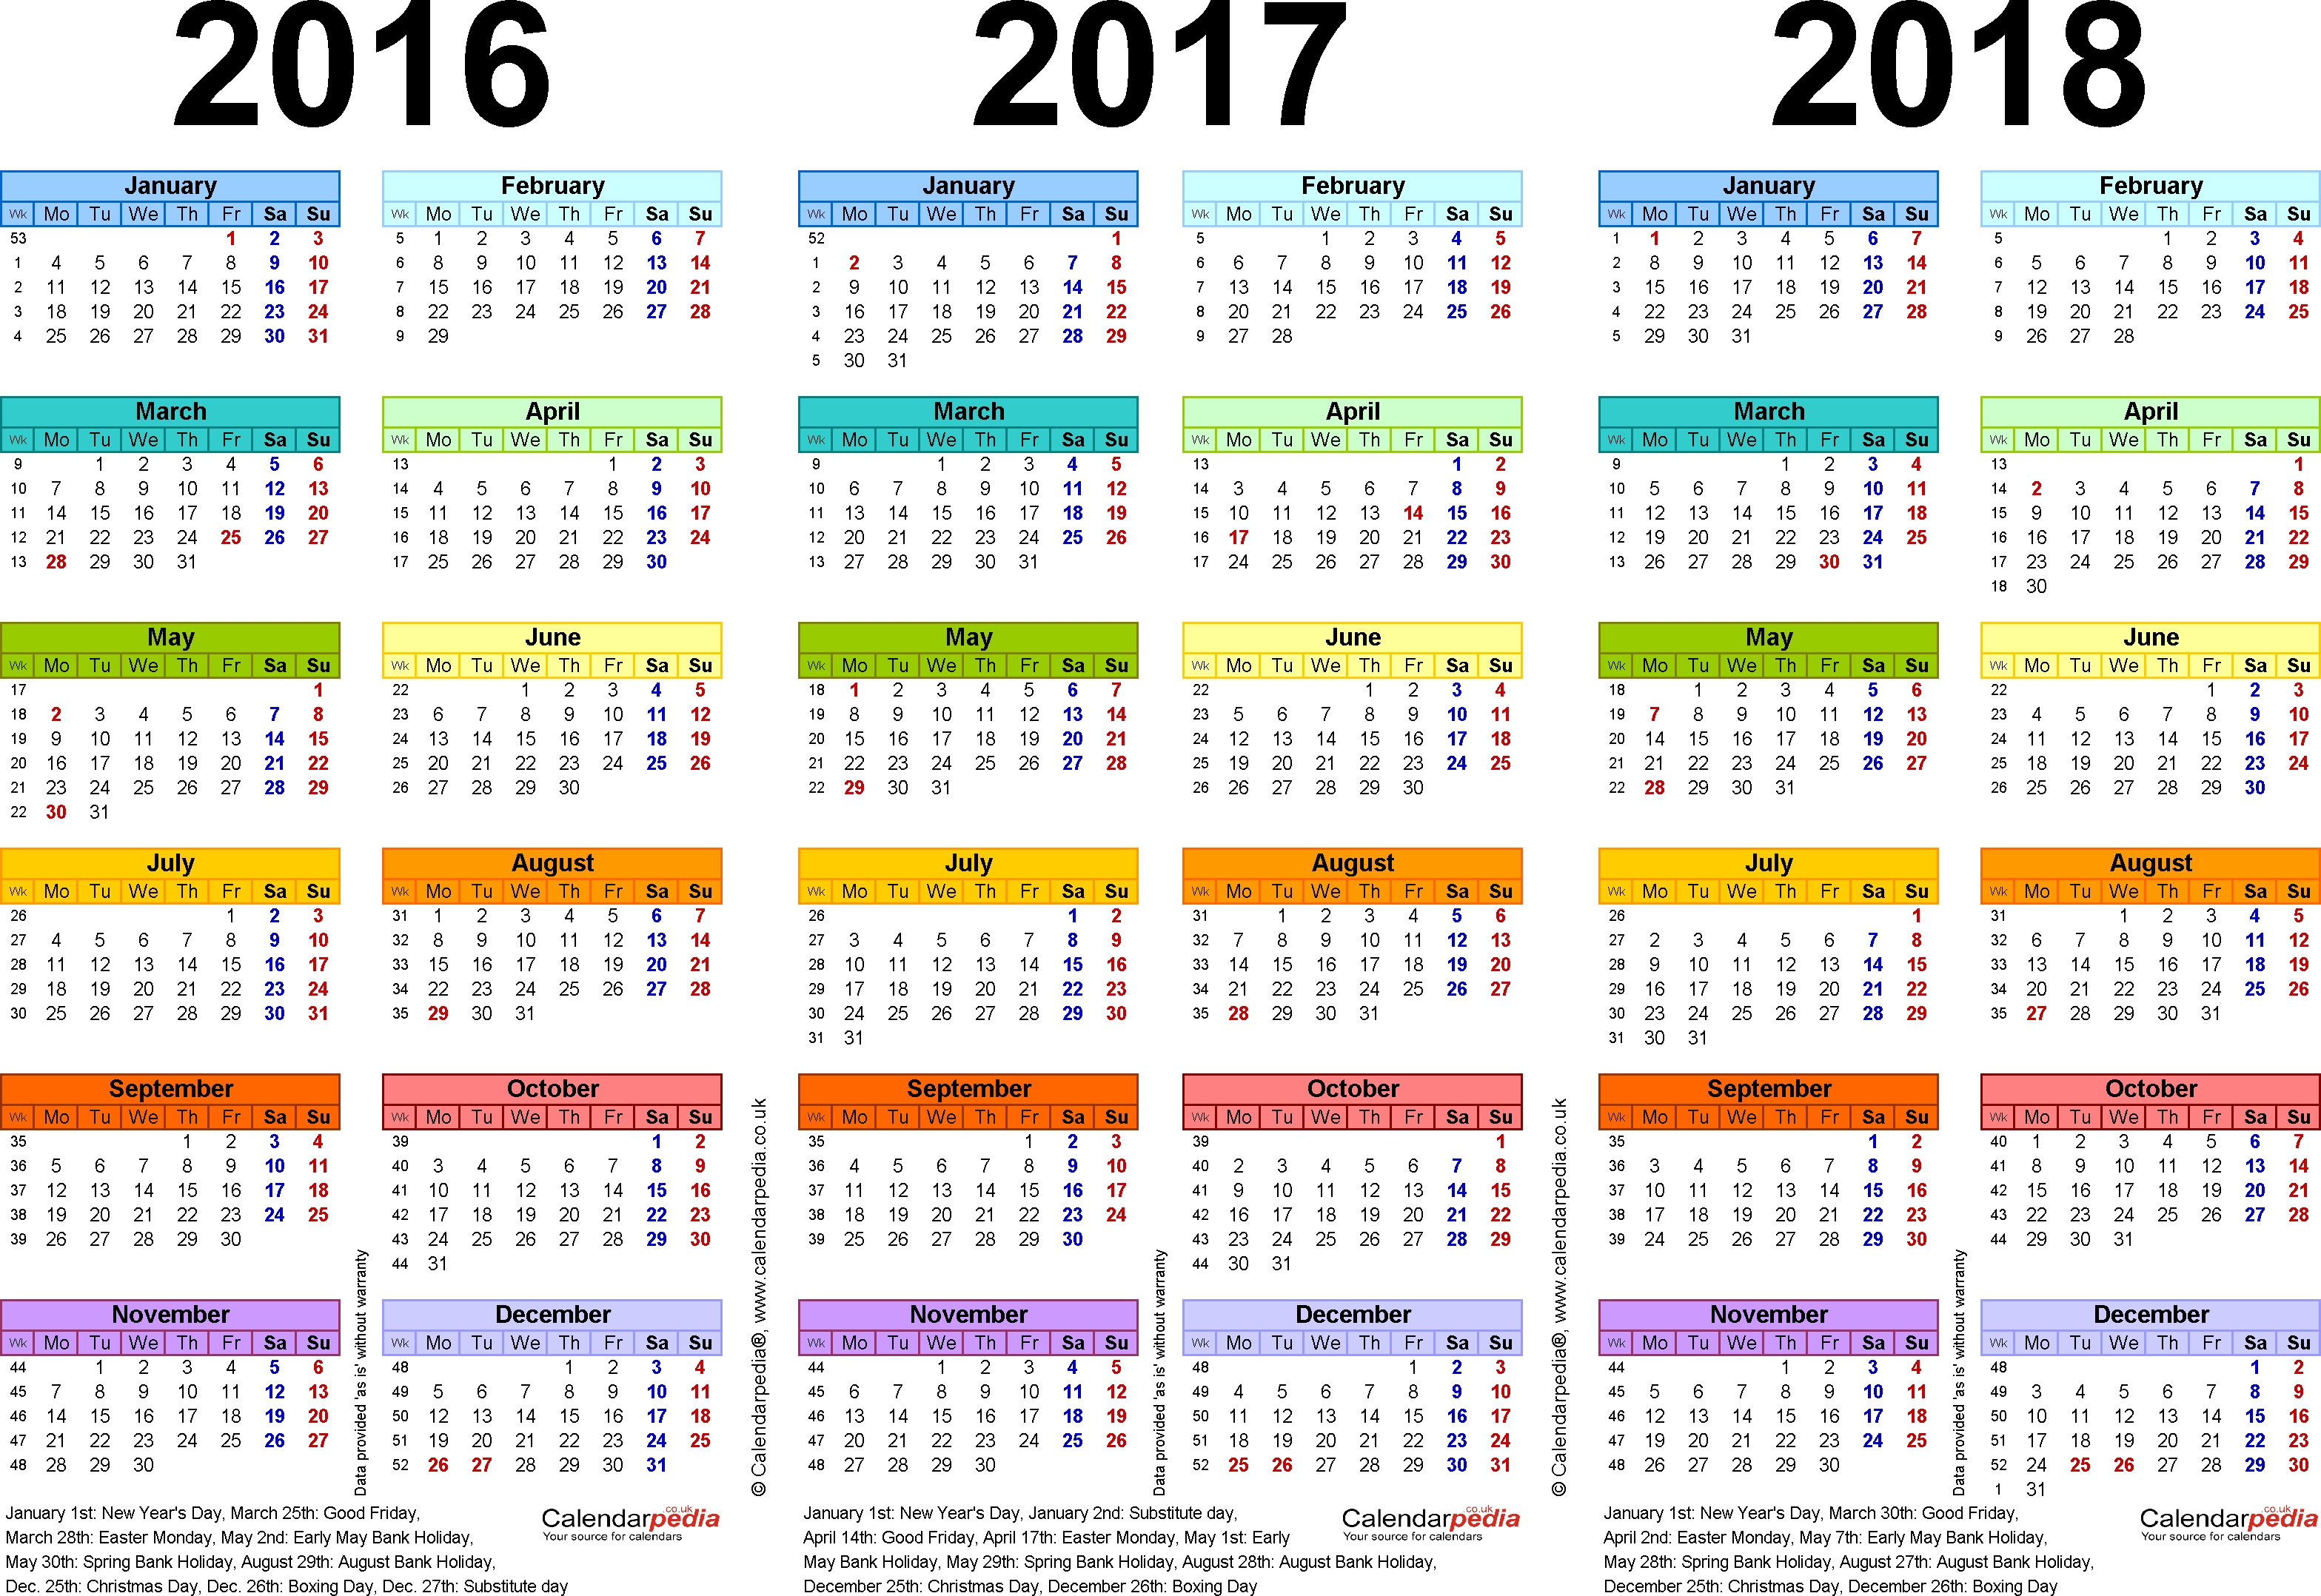 Template 1: Pdf Template For Three Year Calendar 2016/2017